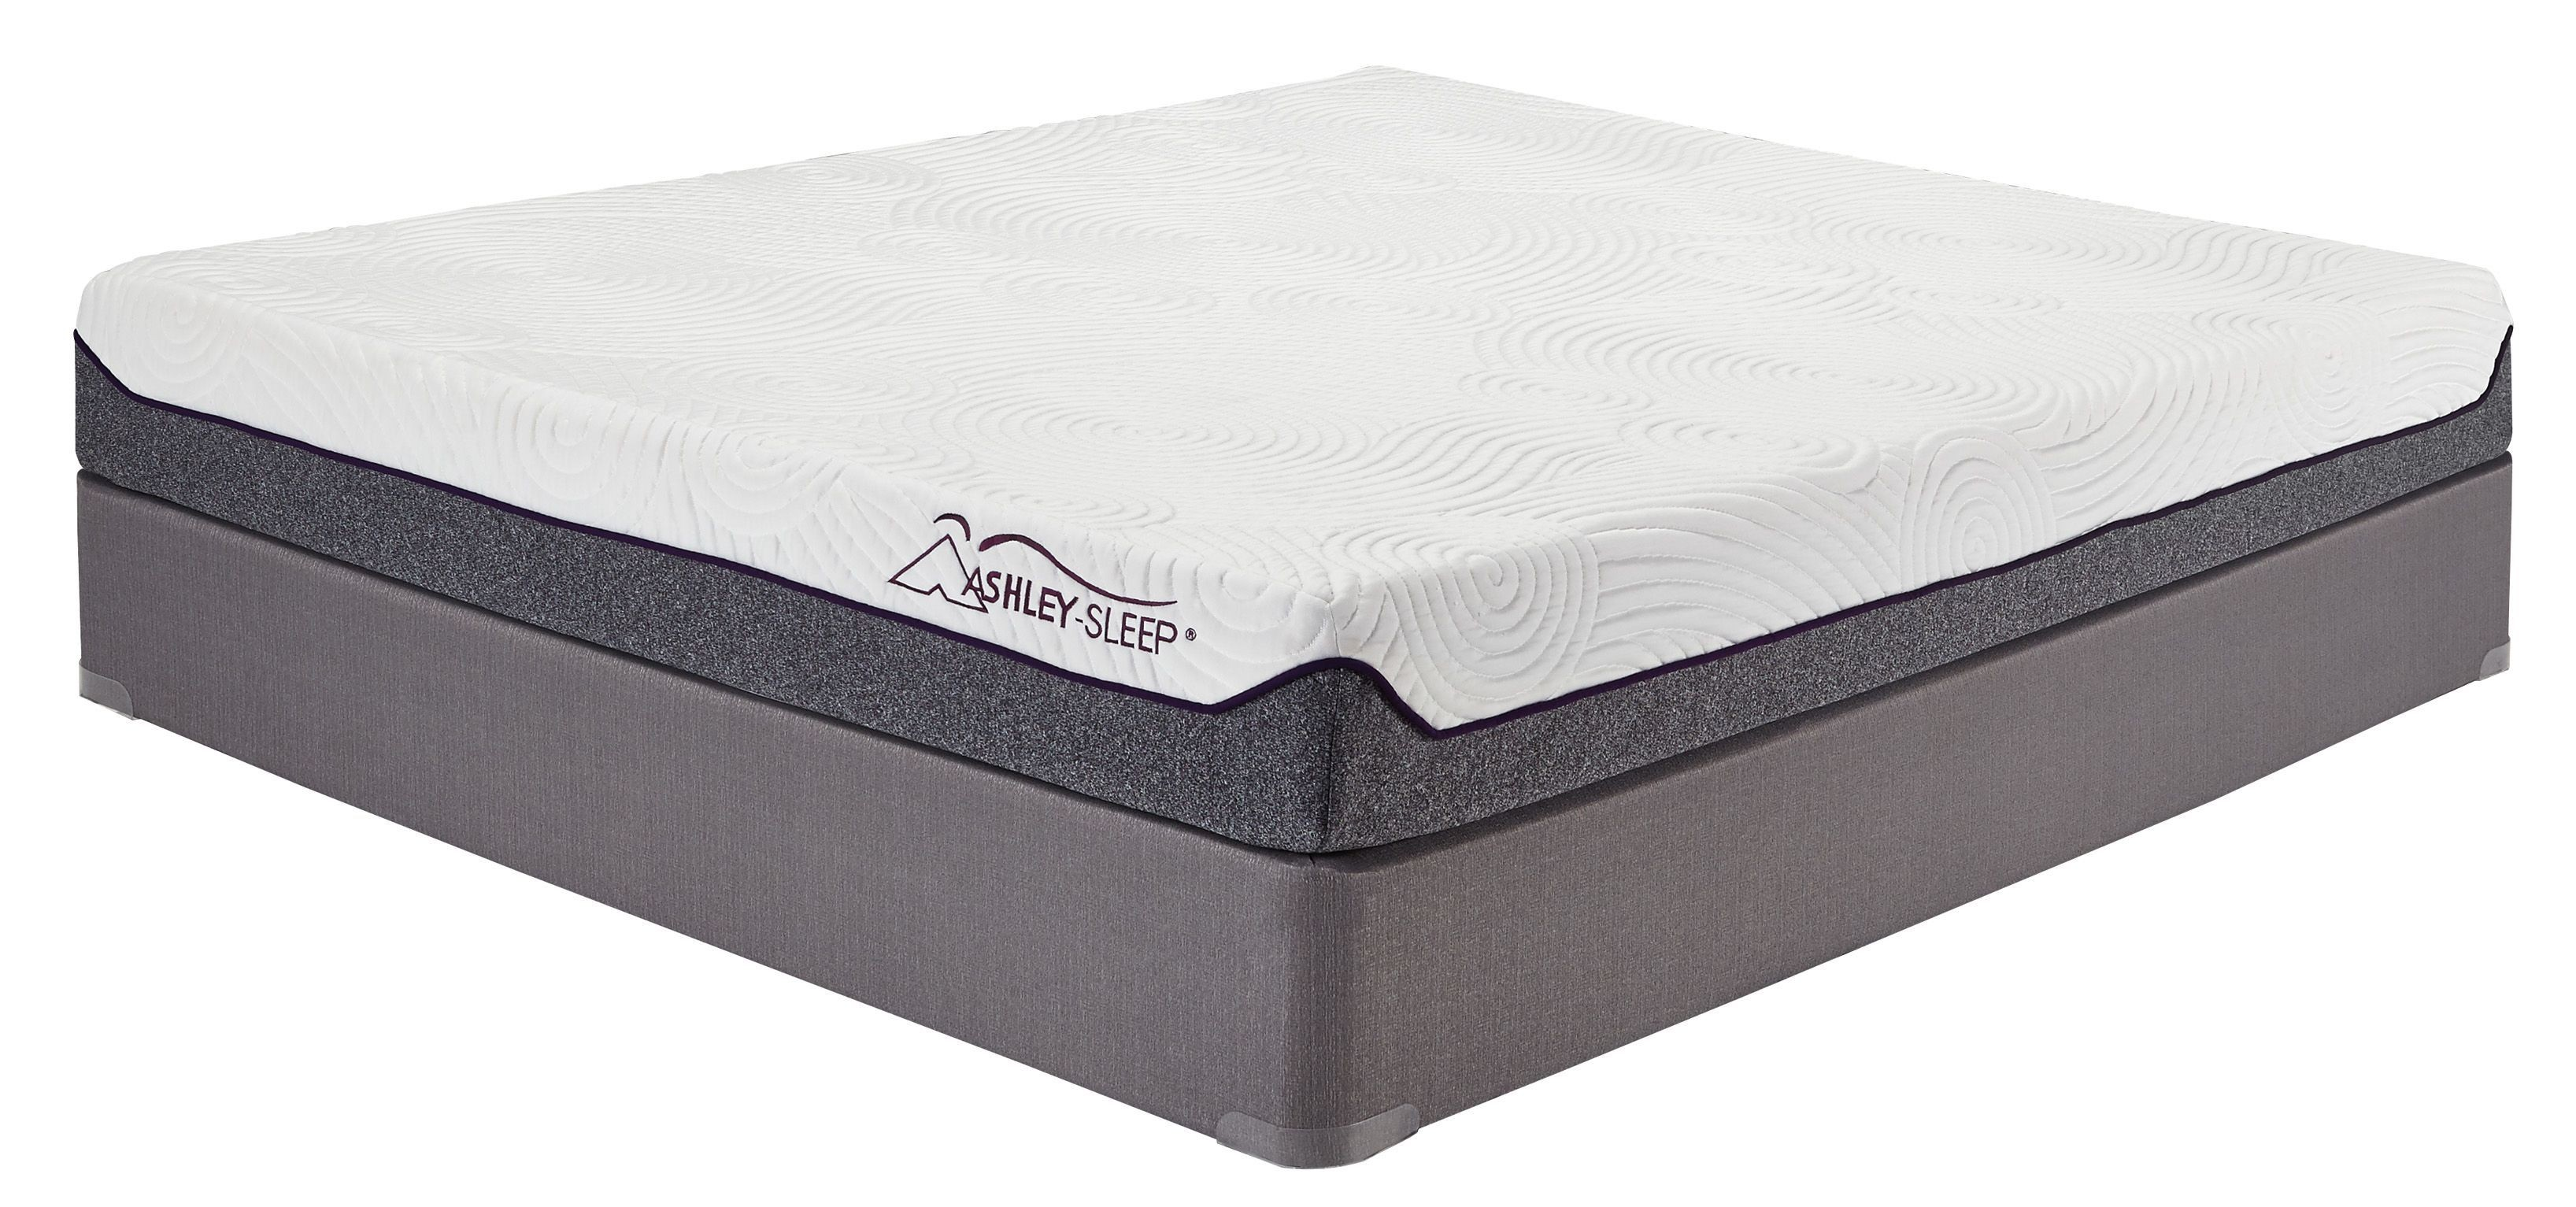 8 Inch Memory Foam White Full Mattress M94421 Ashley